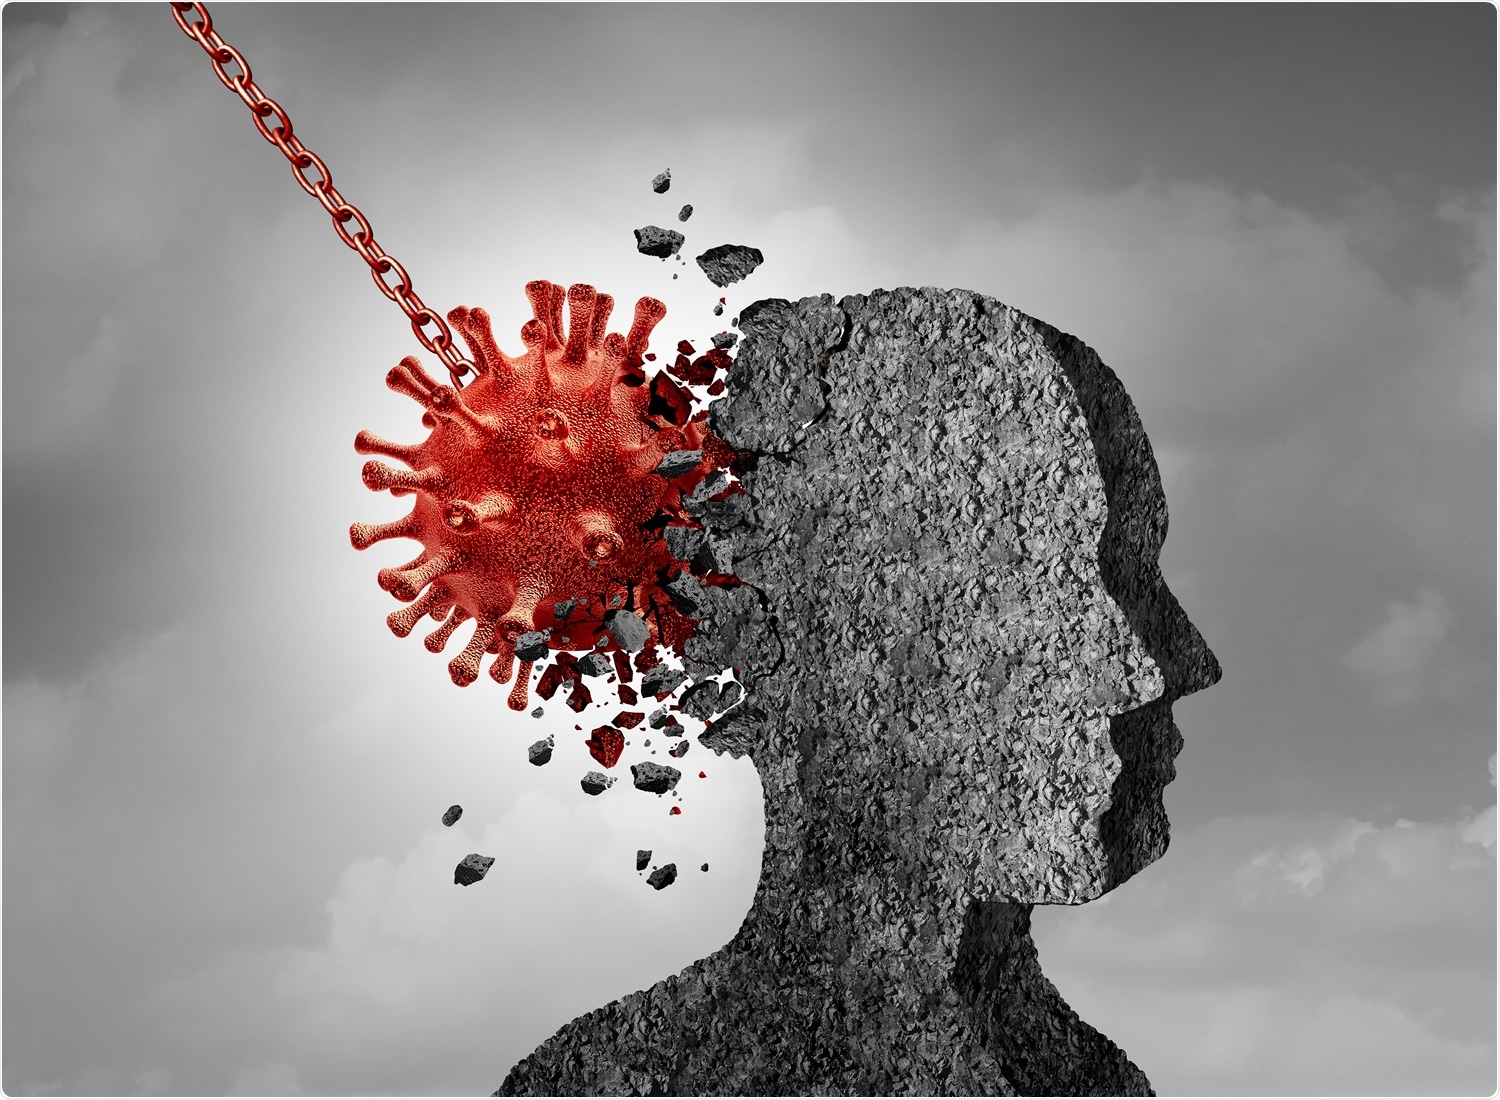 Study: The Pandemic Brain: neuroinflammation in healthy, non-infected individuals during the COVID-19 pandemic. Image Credit: Lightspring / Shutterstock